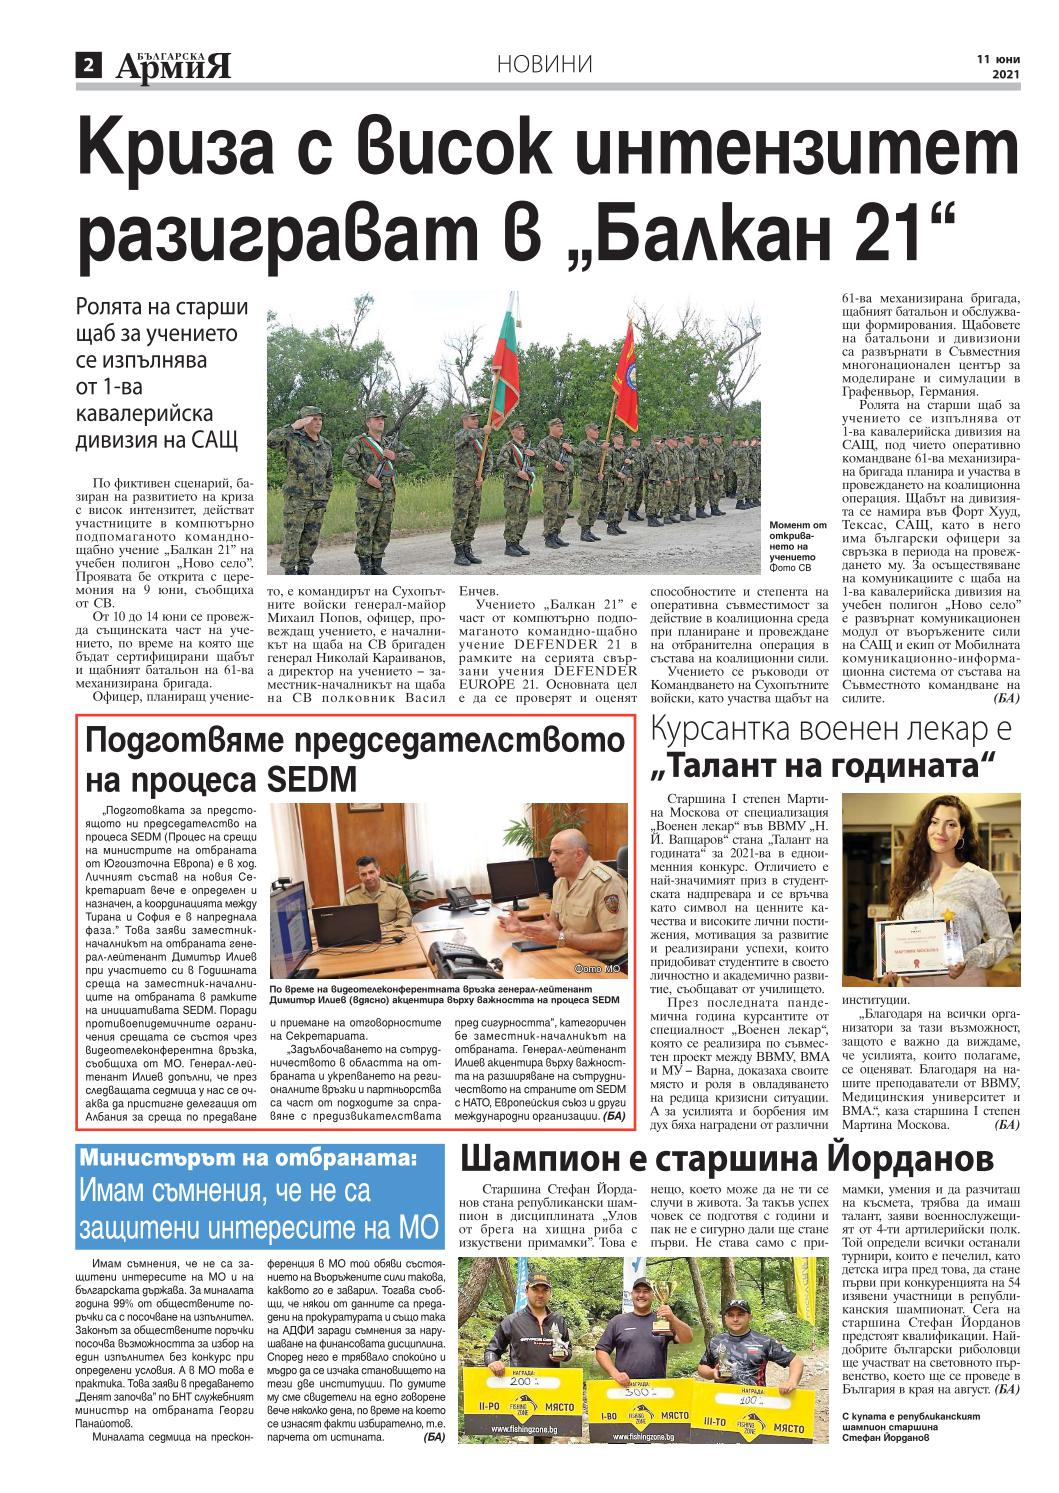 https://armymedia.bg/wp-content/uploads/2021/06/02.page1_-1.jpg